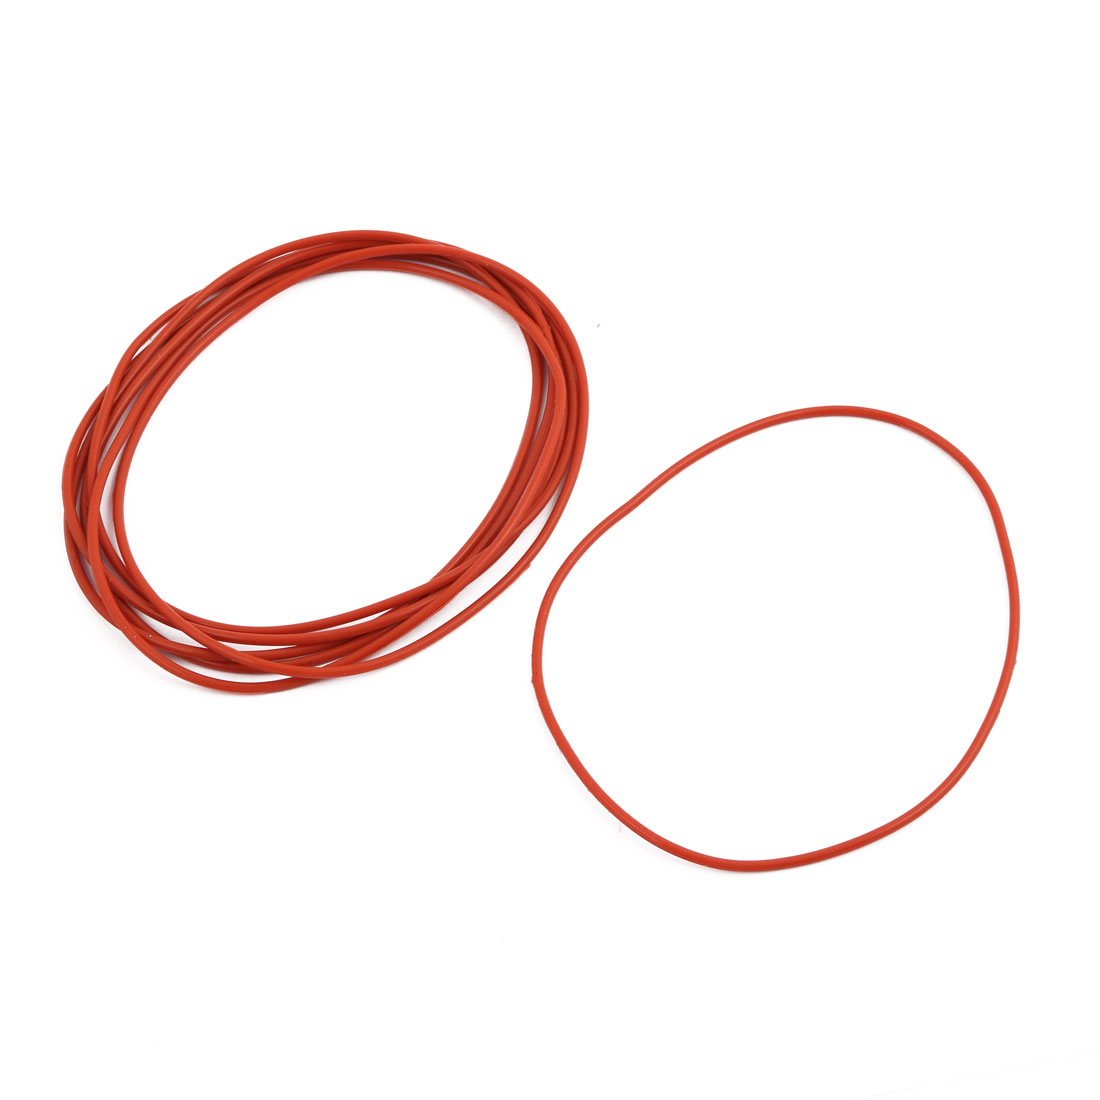 10Pcs Red Round Nitrile Butadiene Rubber NBR O-Ring 90mm OD 1.9mm Width